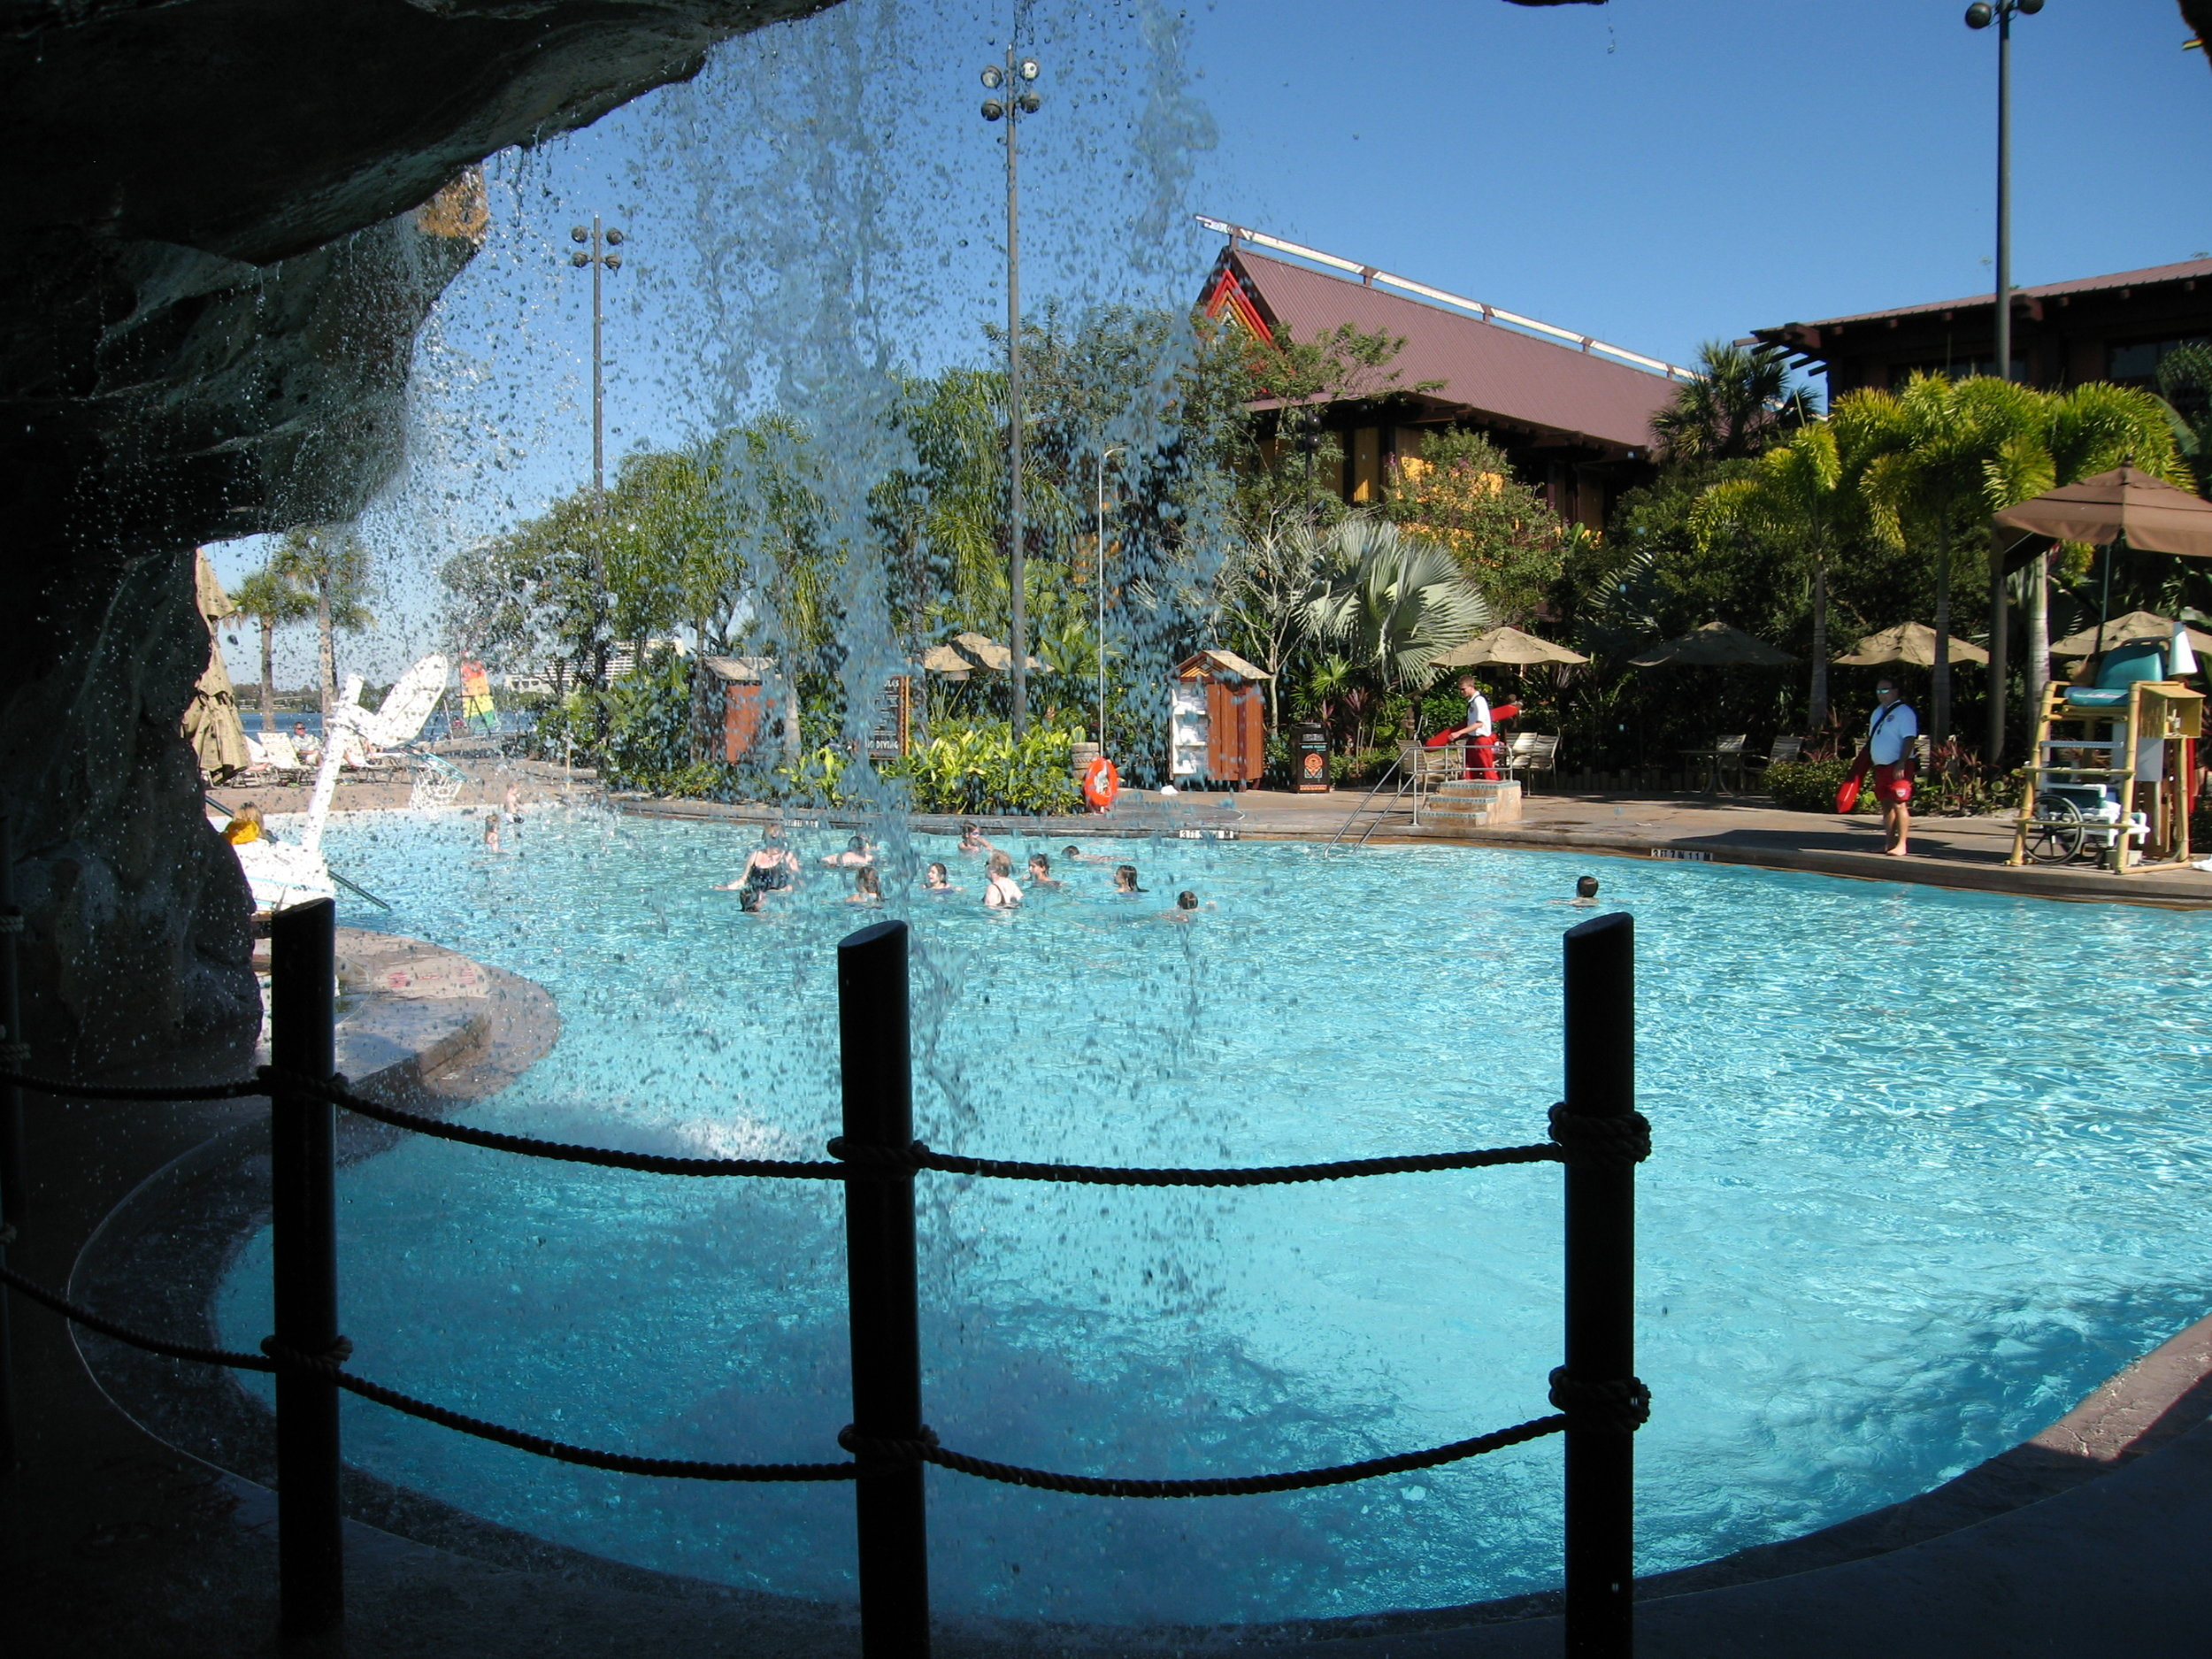 Disney's_Polynesian_Resort;_Pool.JPG